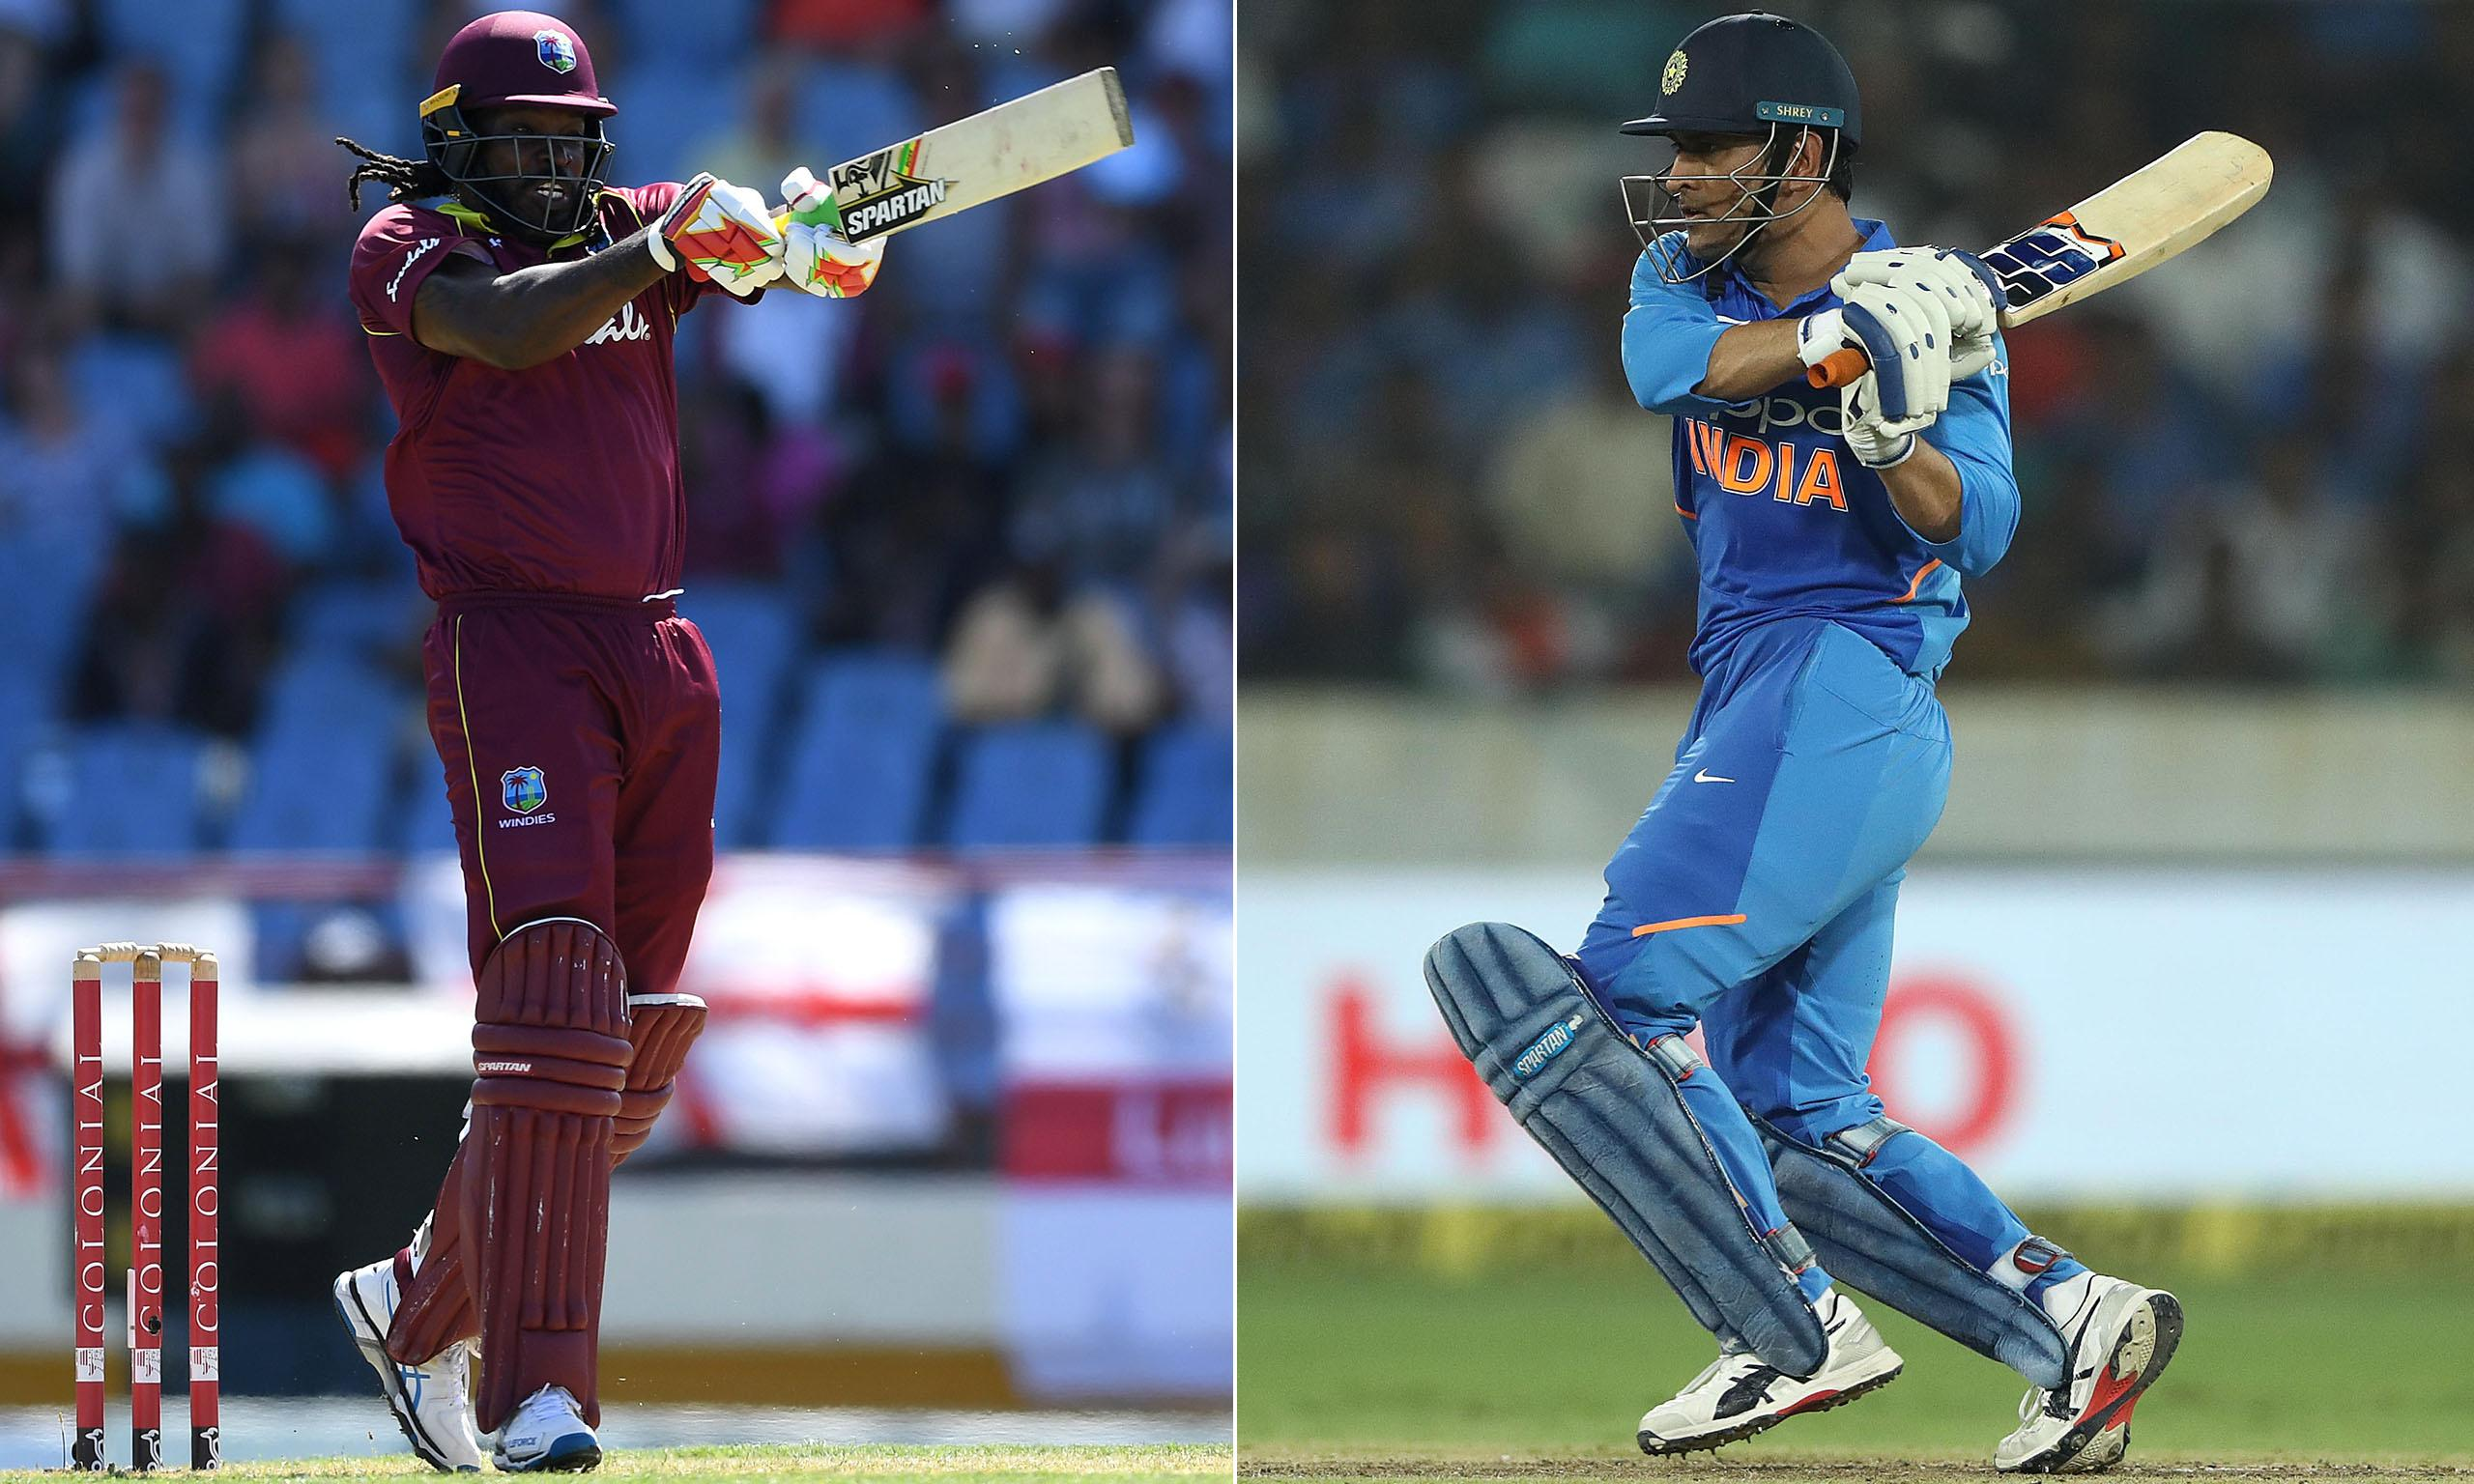 Not out yet: Chris Gayle and MS Dhoni rage against the dying of the light